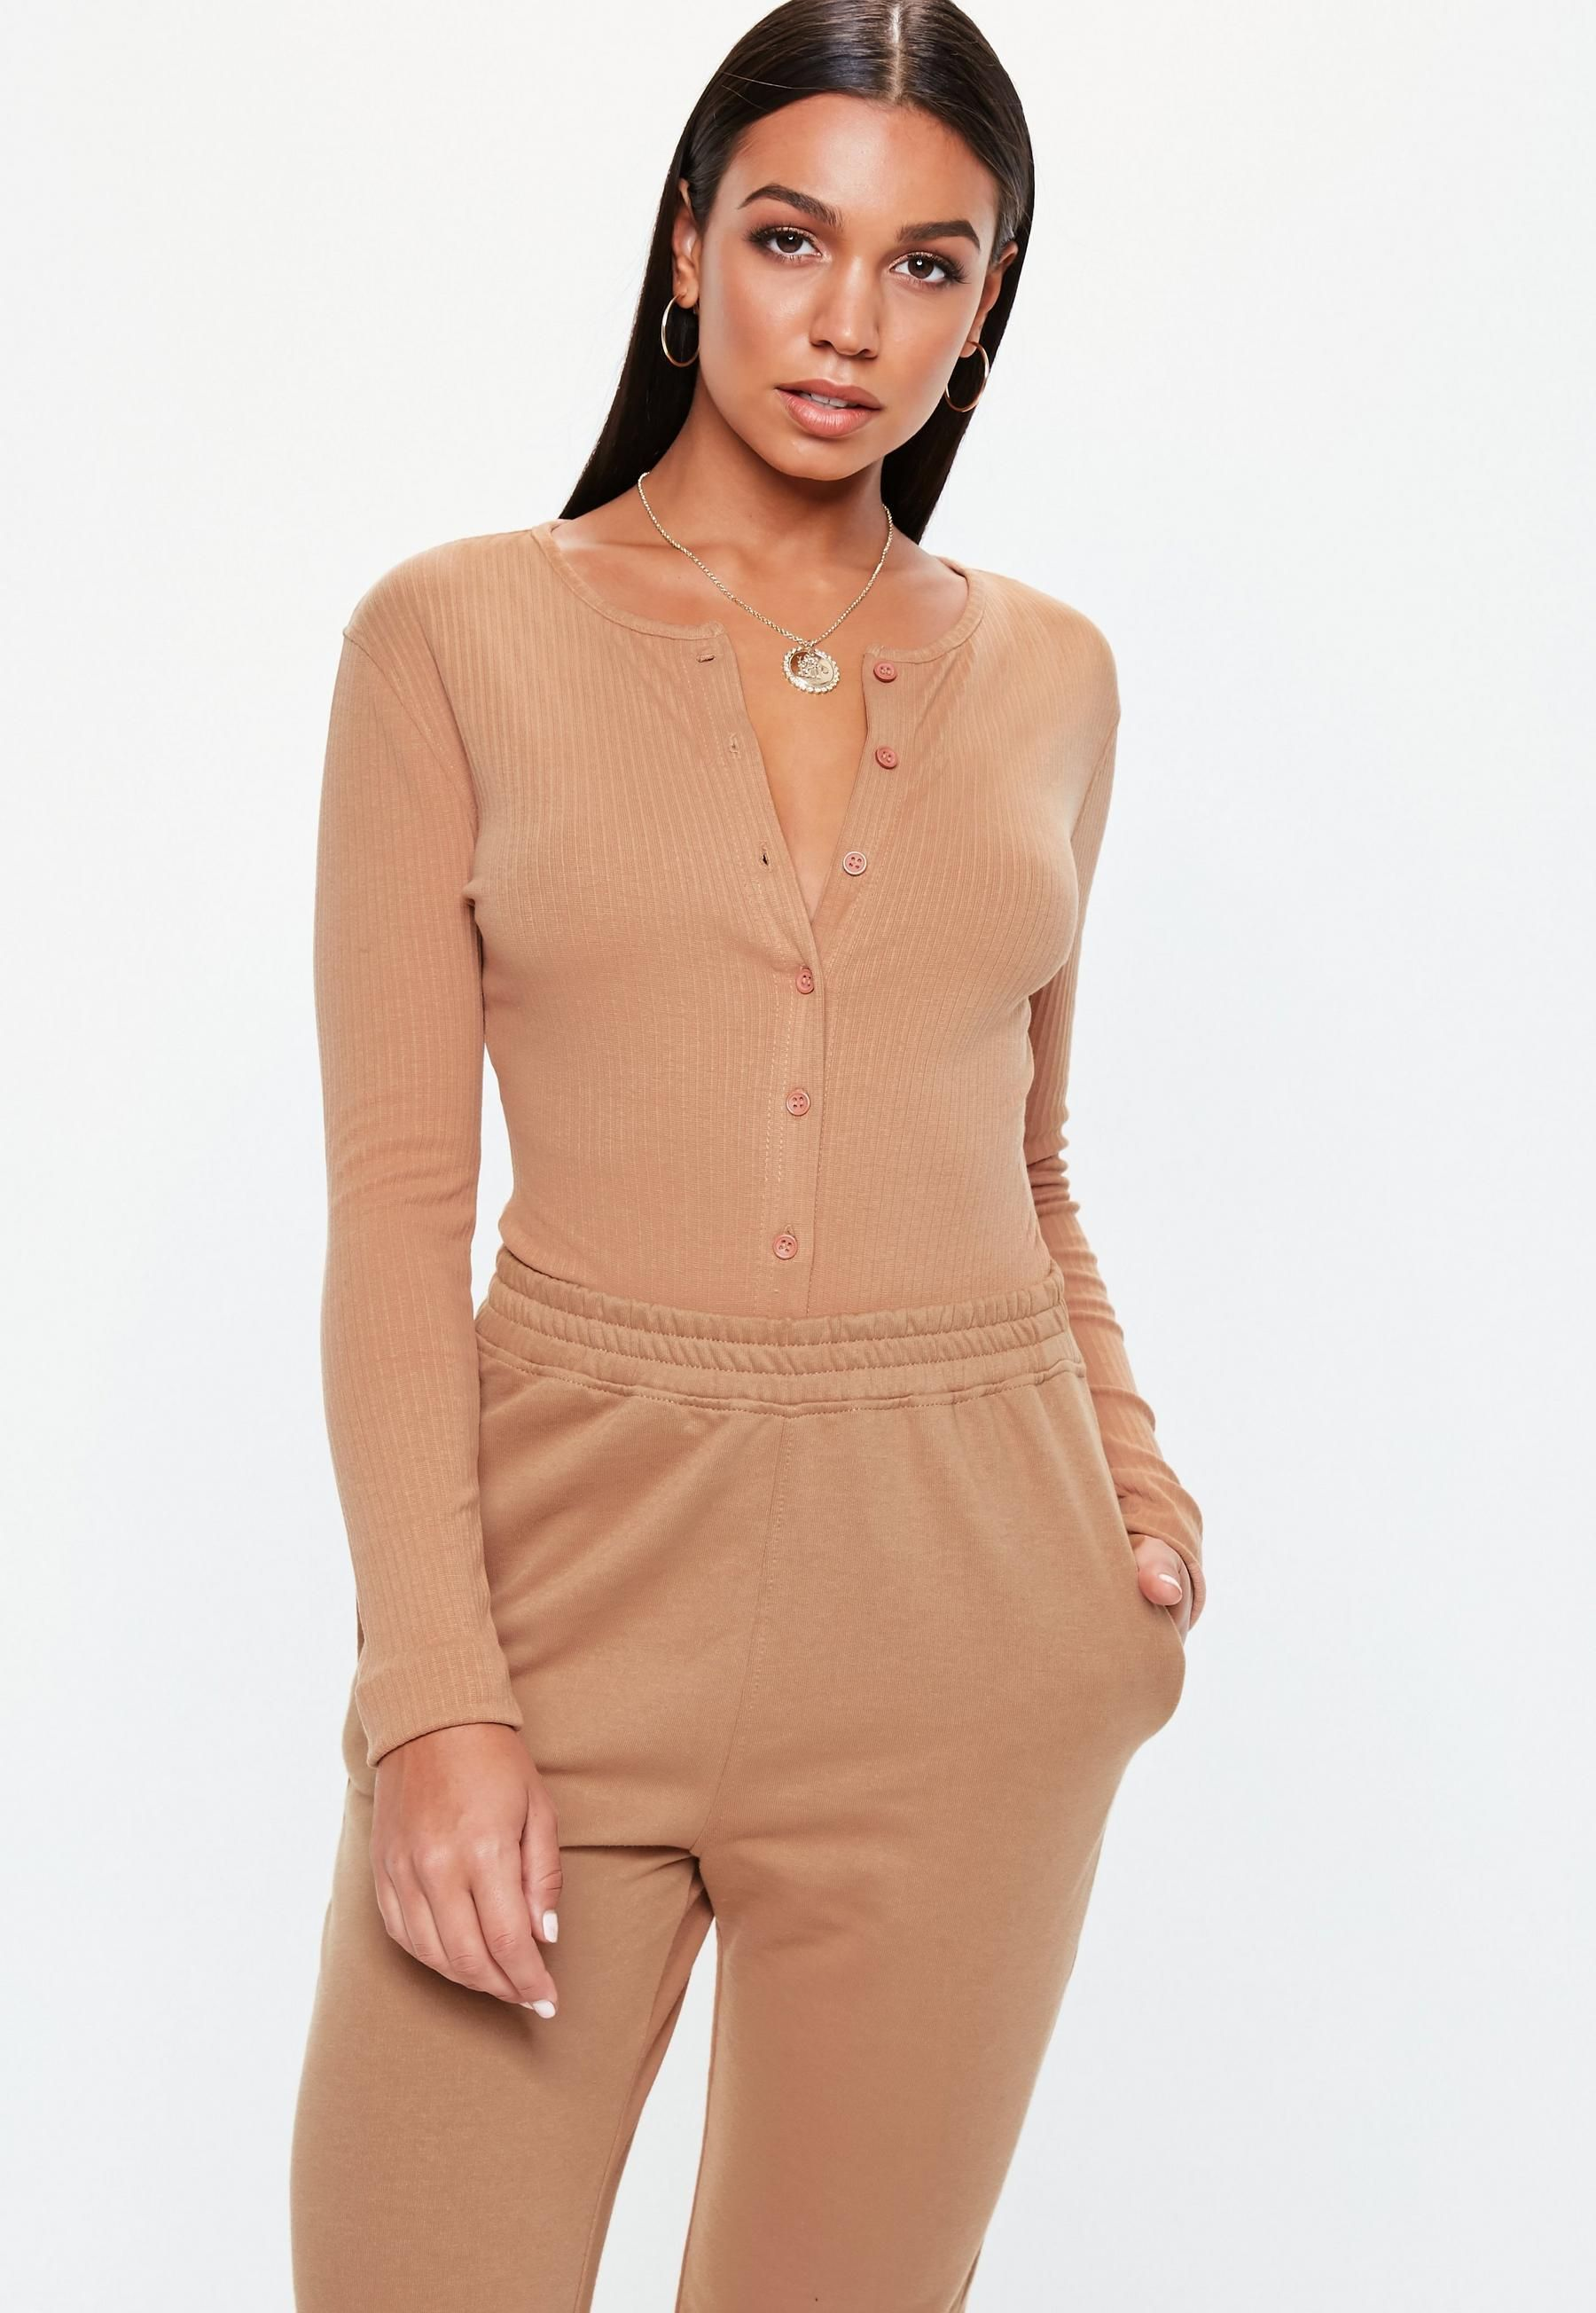 a28a4d57f9 Missguided Light Brown Ribbed Button Front Bodysuit in 2019 ...